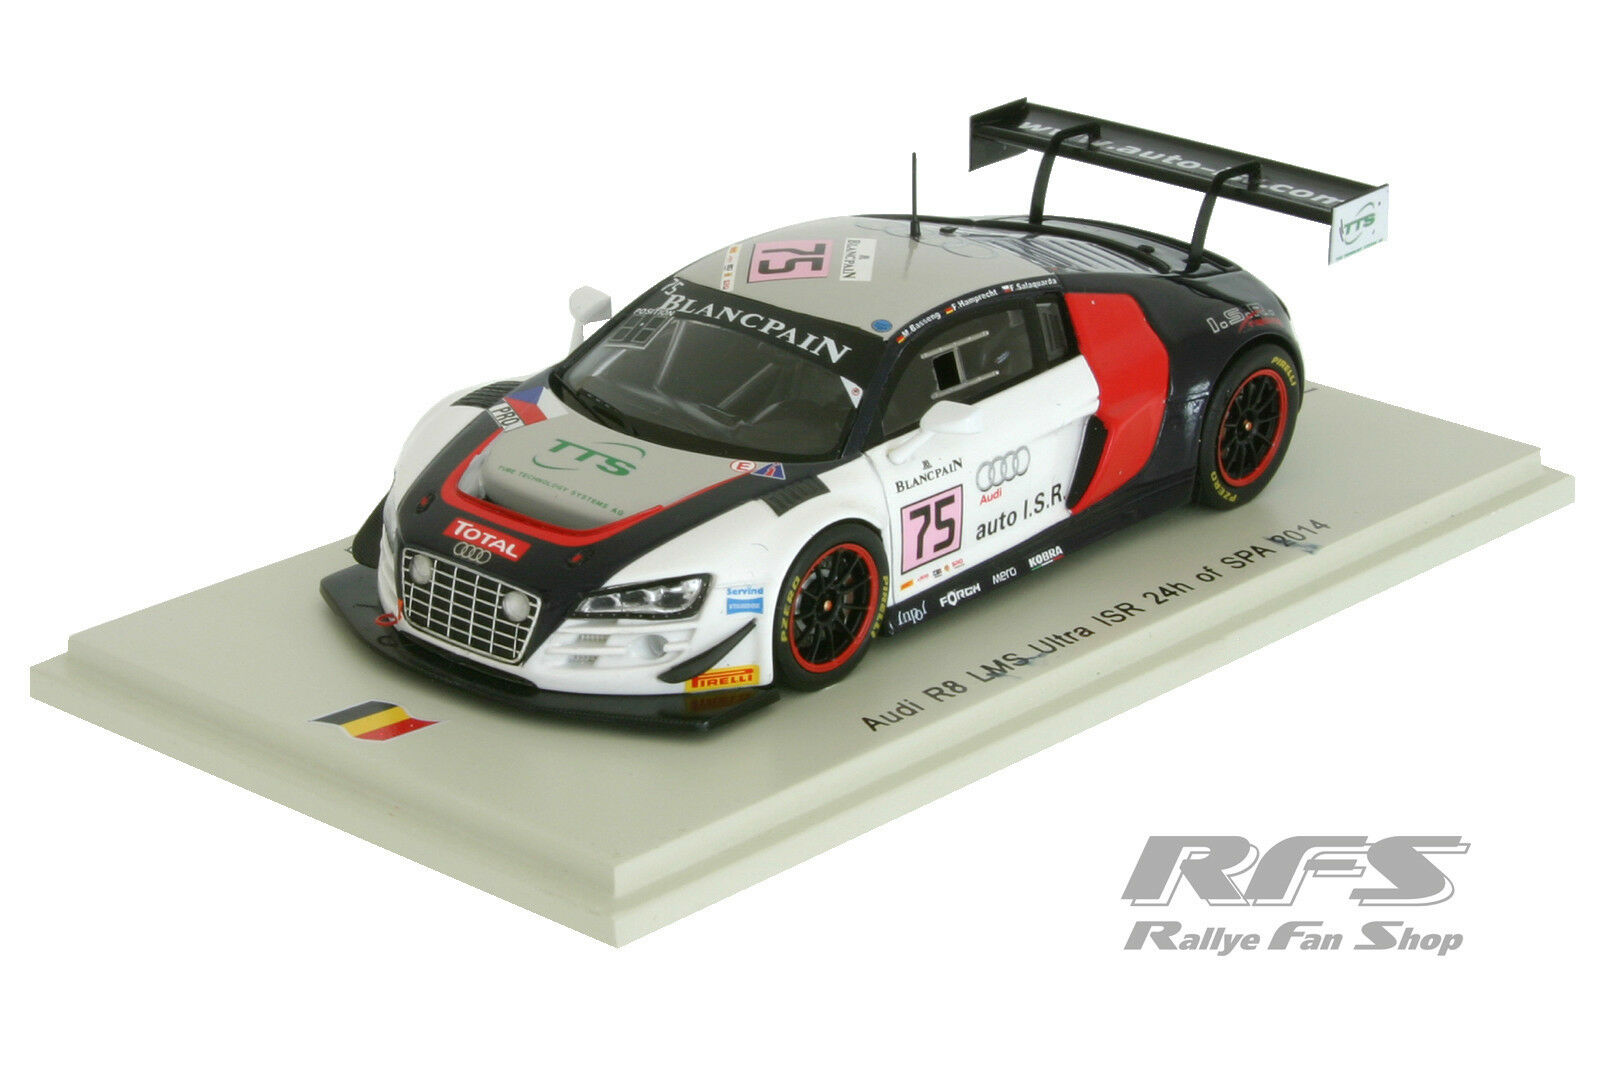 AUDI r8 LMS ultra-Basseng - 24 hours of spa 2014 - 1:43 spark sb103 | Discount